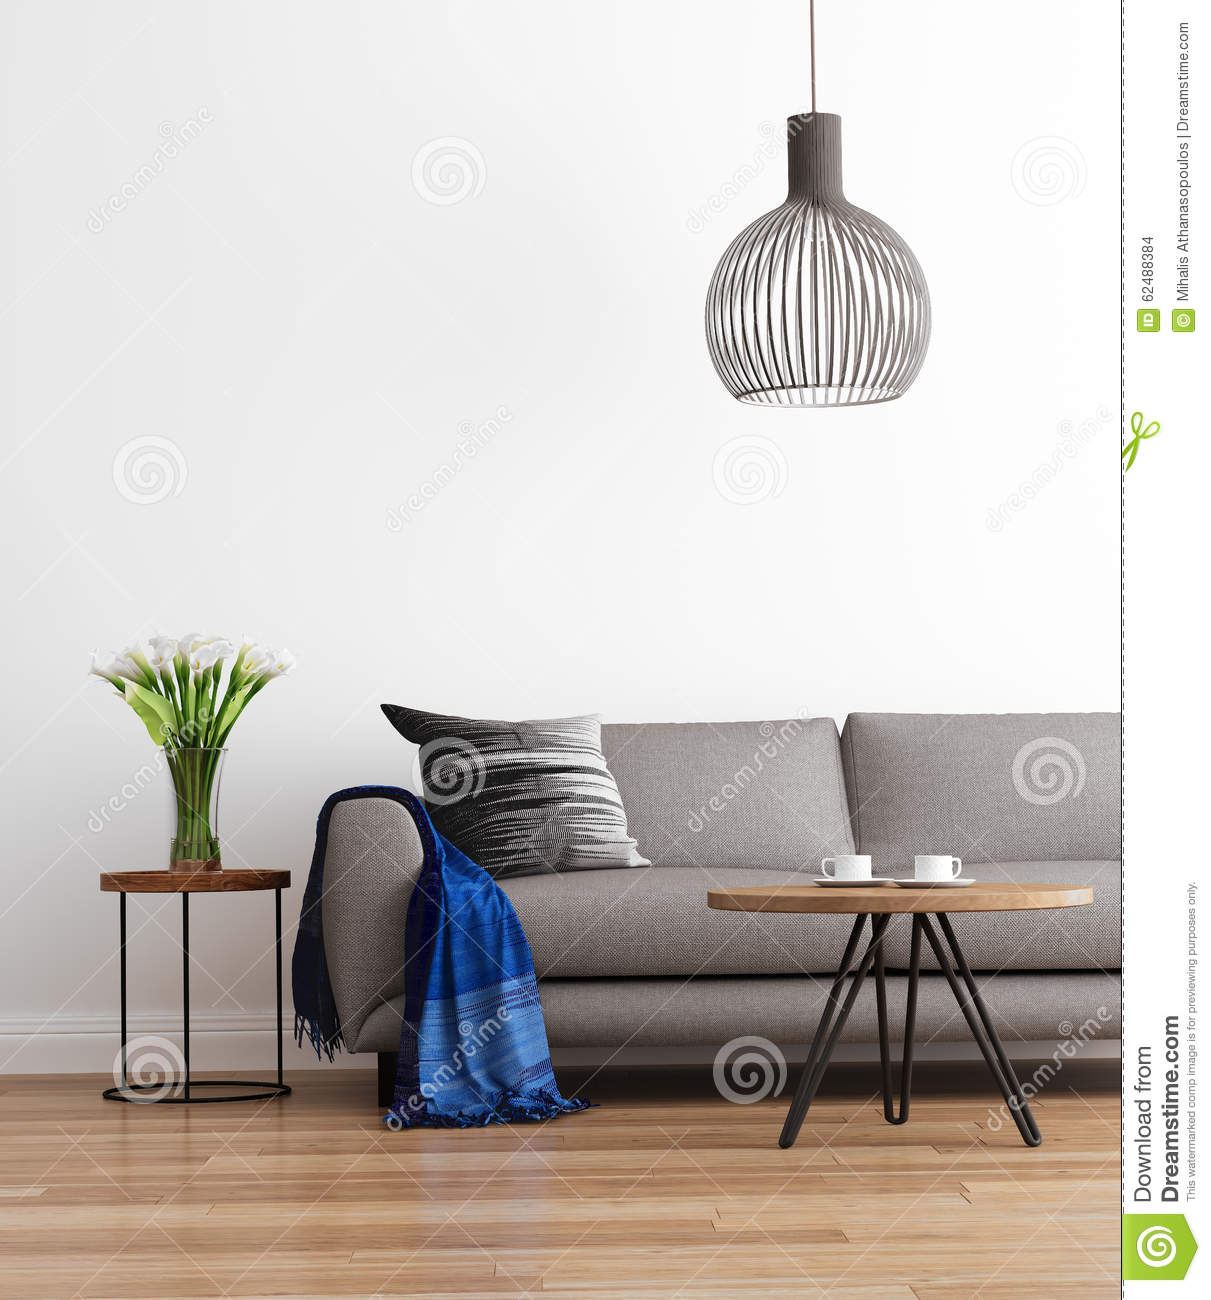 Contemporary Modern Living Room With Grey Sofa Stock Photo - Image ...